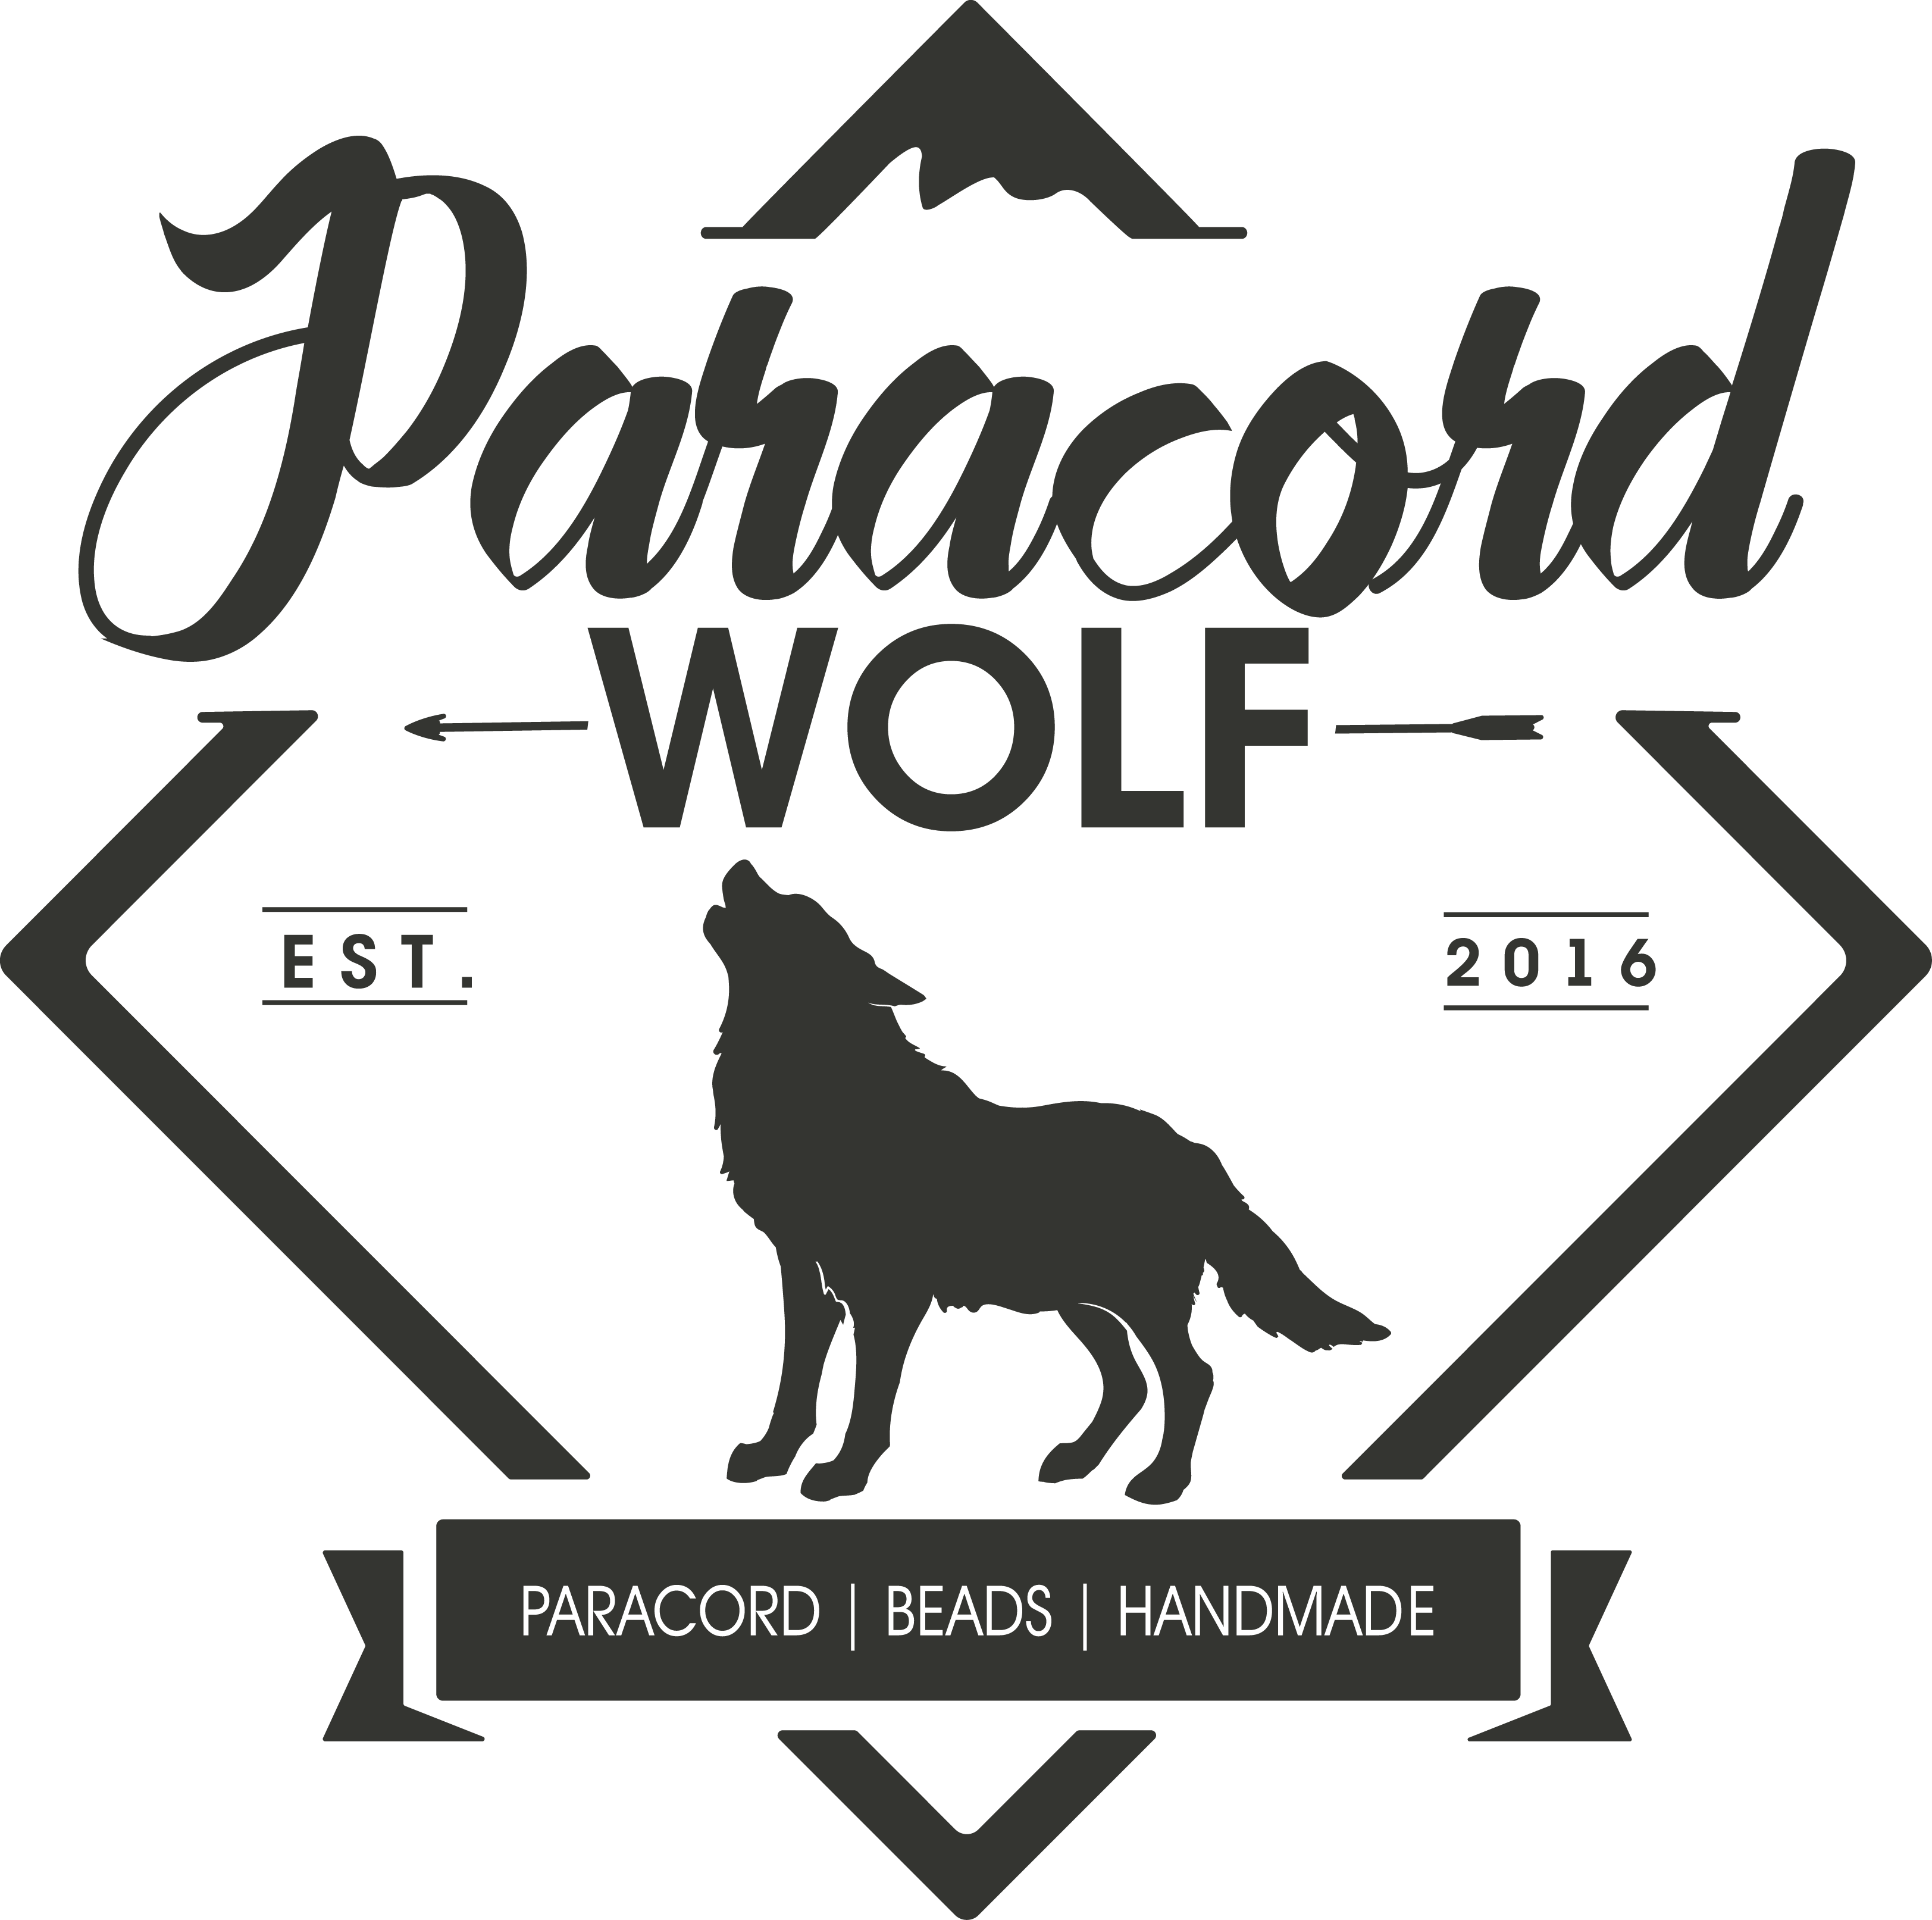 PARACORD WOLF needs a unique, noble and COMMERCIAL LOGO for our brand